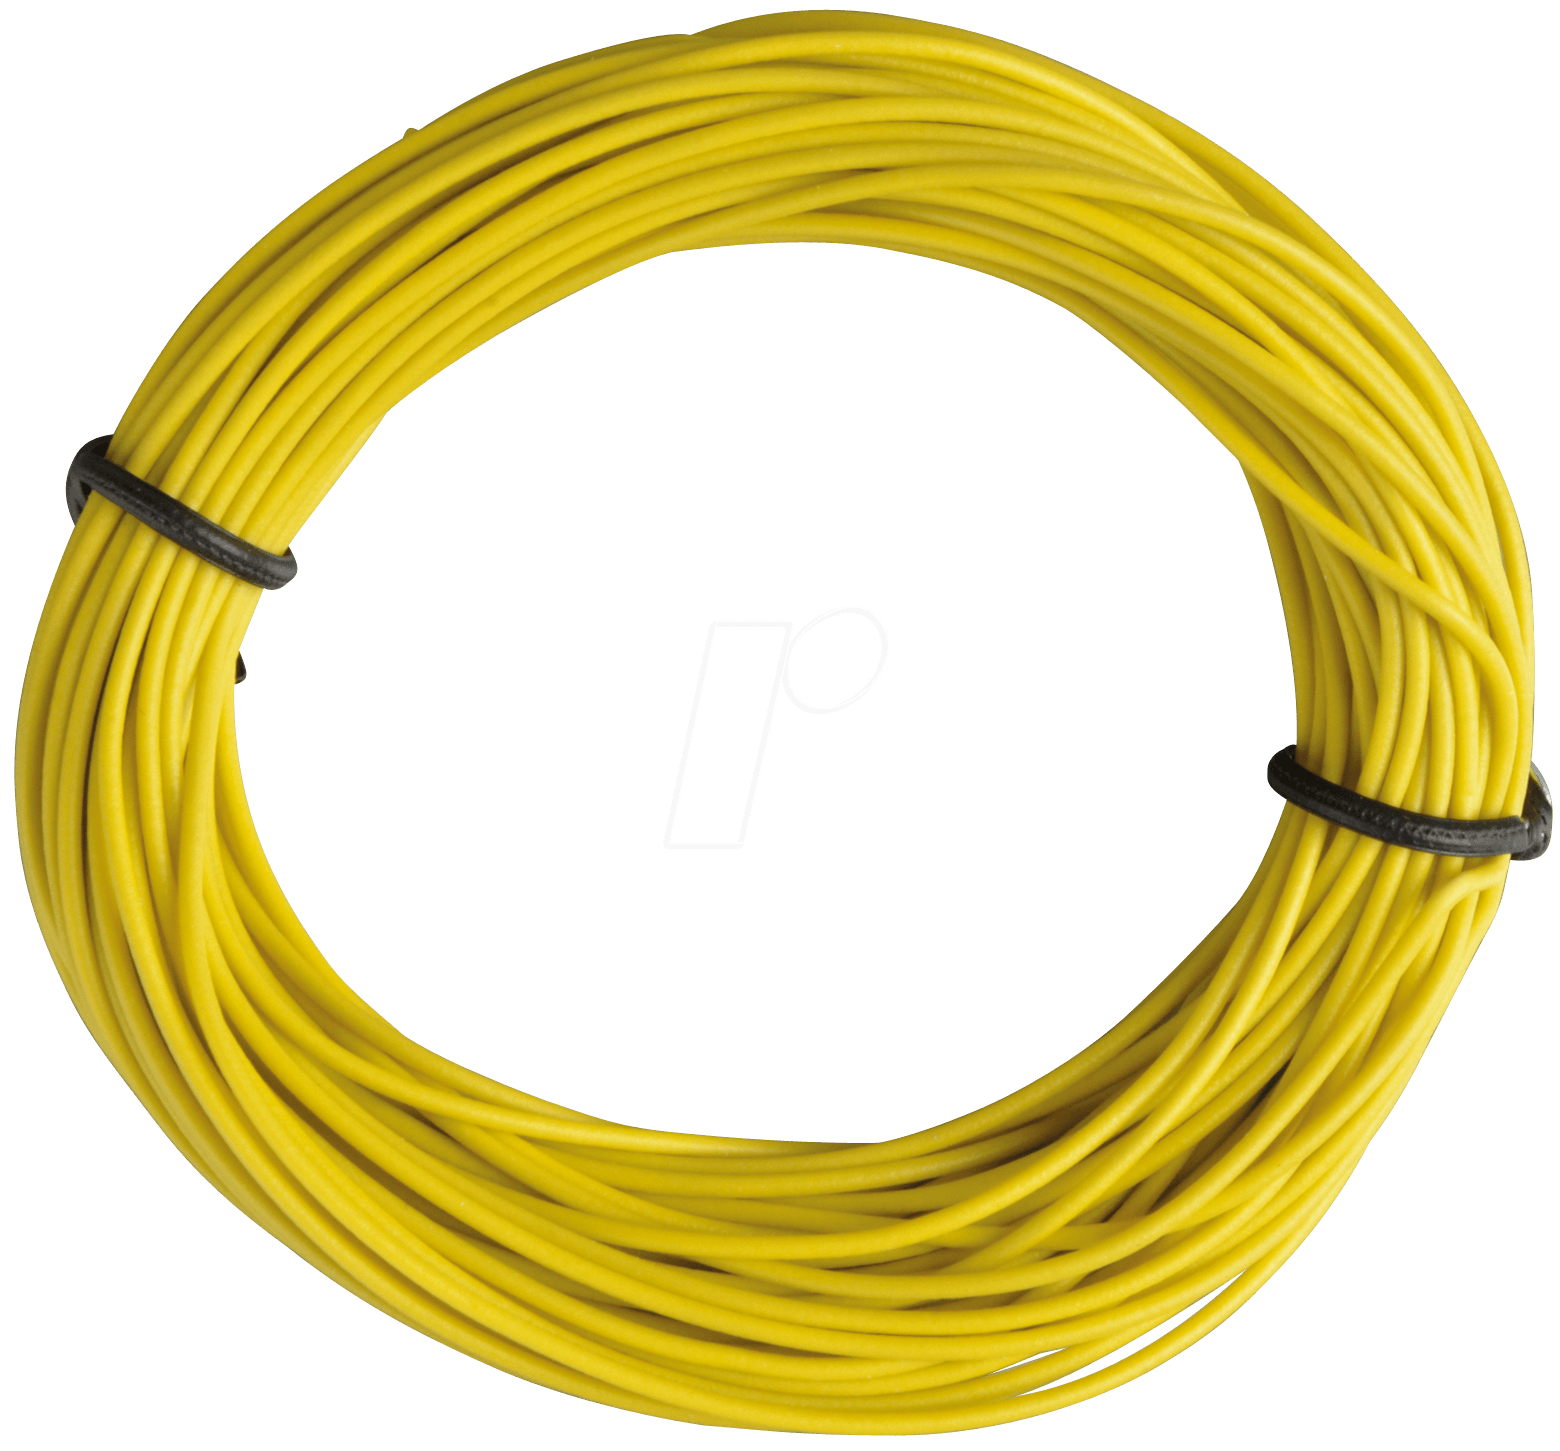 Yellow Copper Wire Png Image - 1607 - TransparentPNG